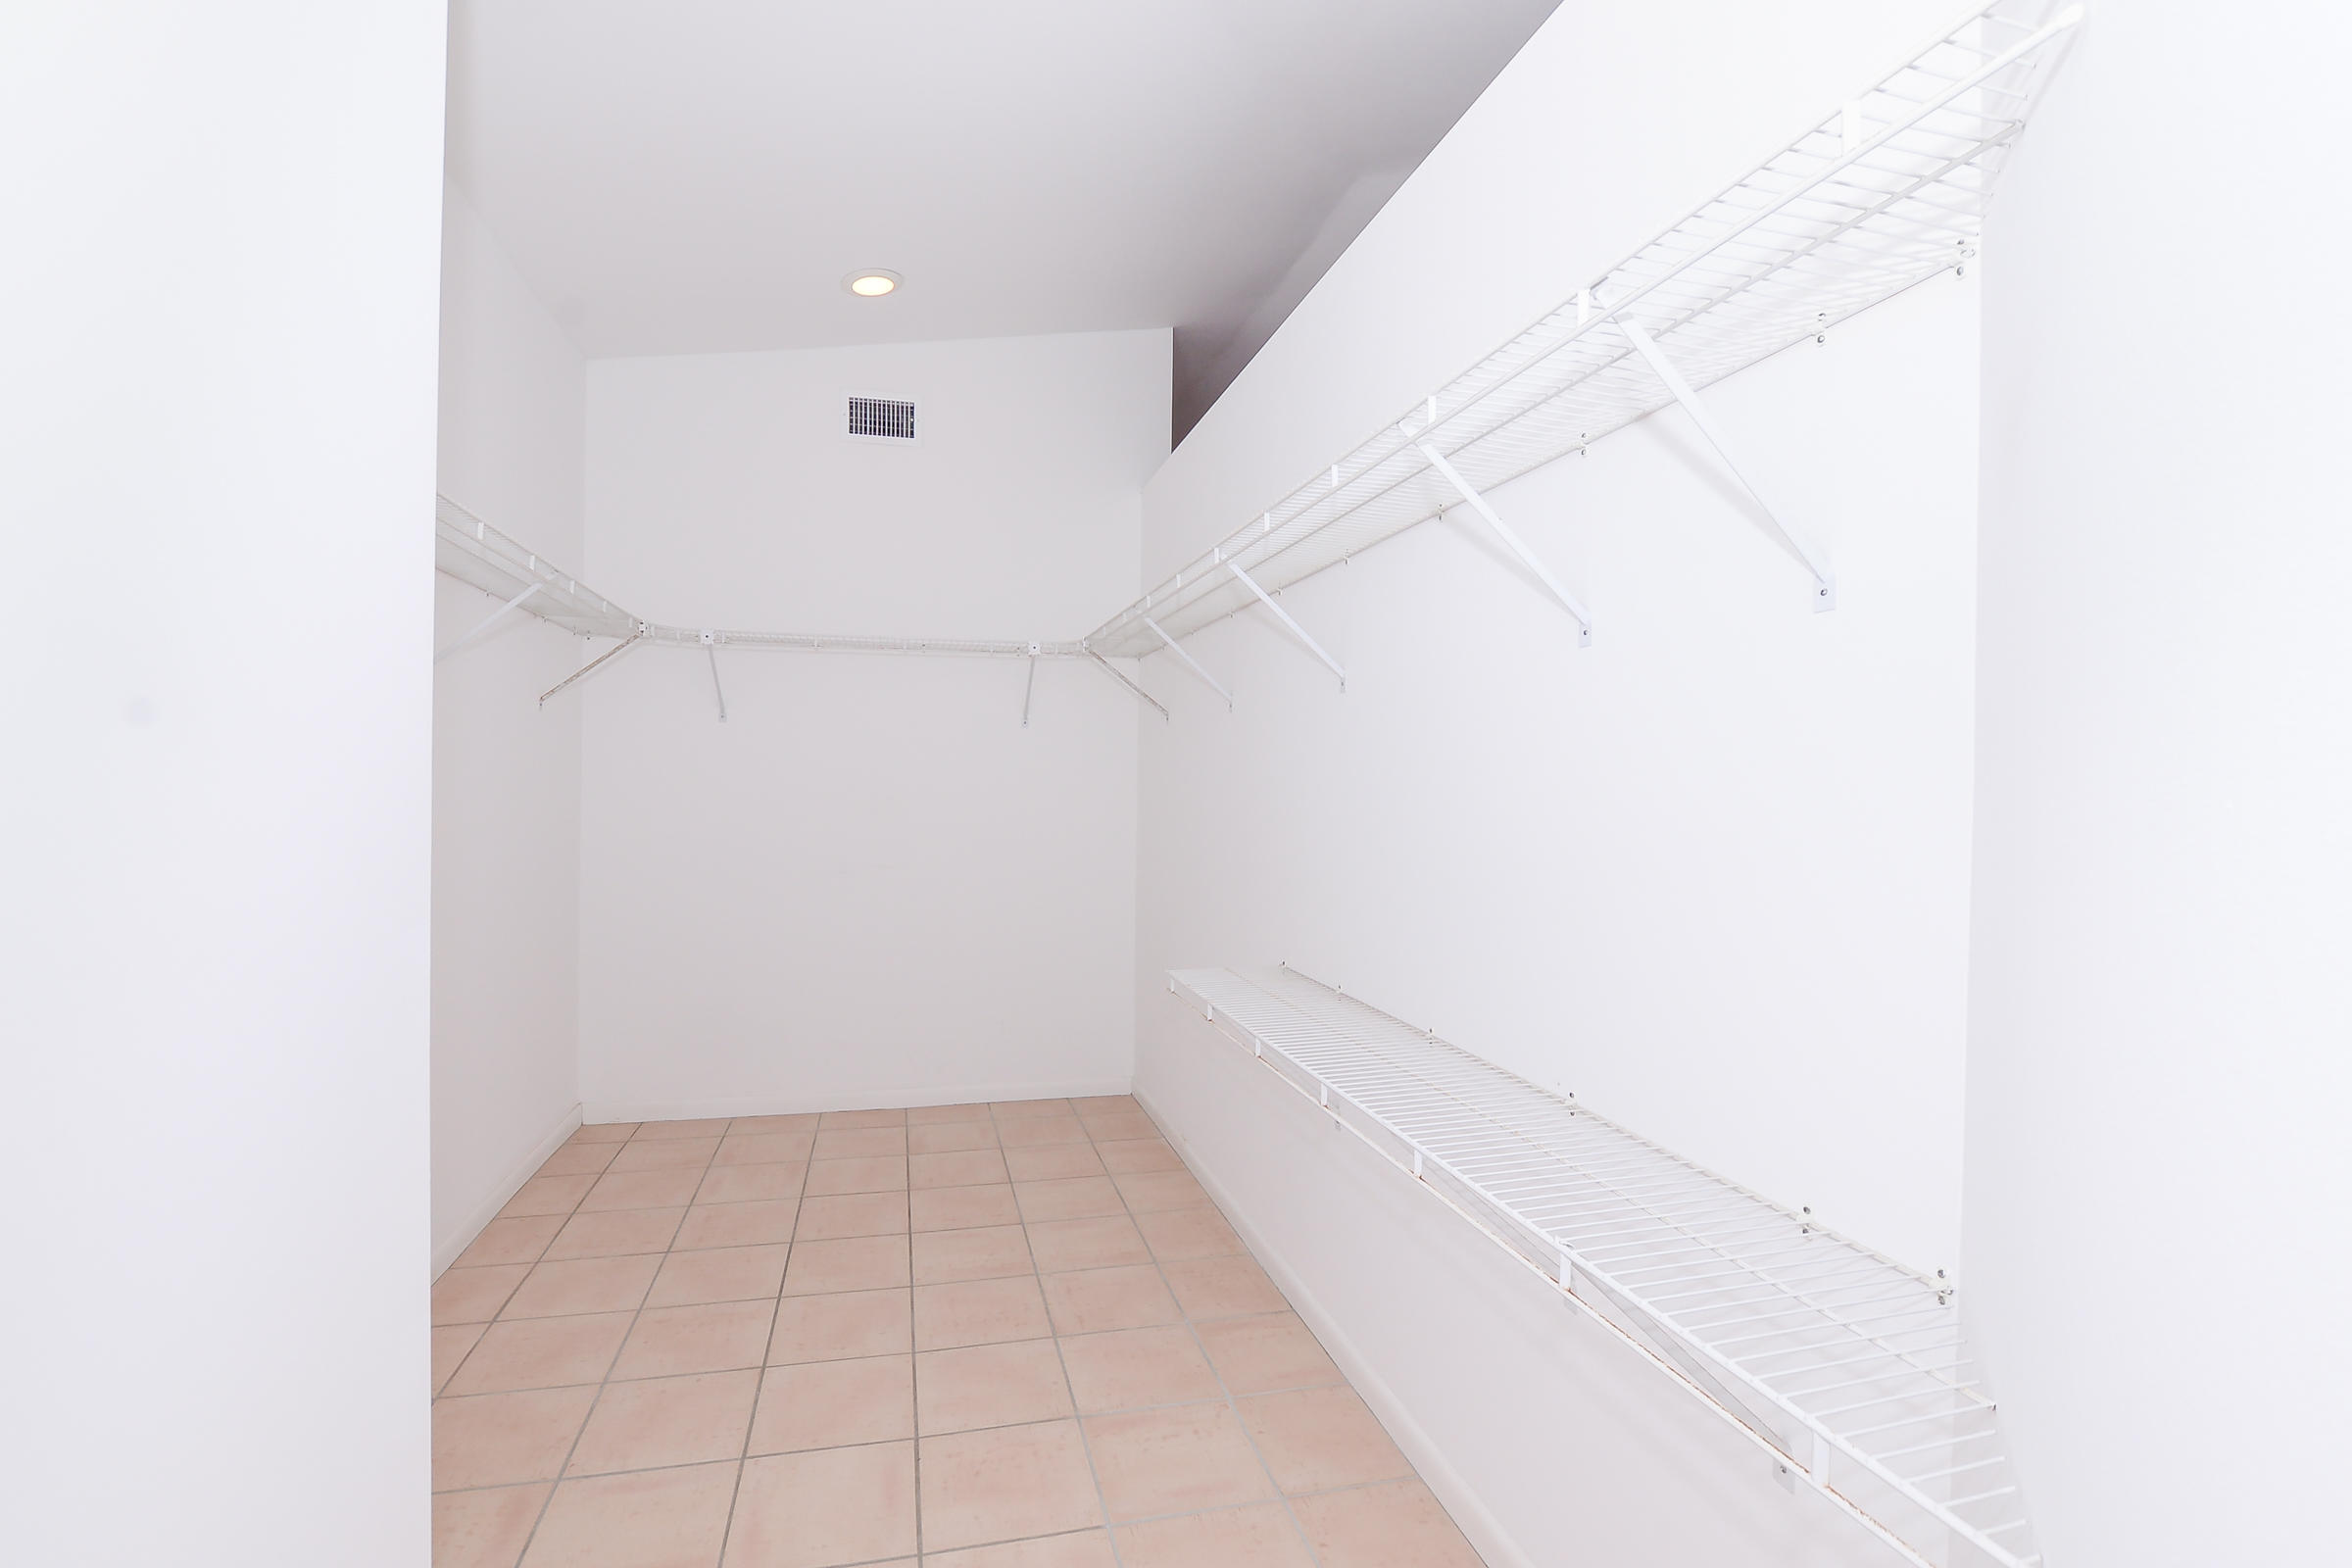 FORT PIERCE SHORES-UNIT 1- BLK 2LOTS 23 AND 24 (OR 407-2695: 4116-2879)